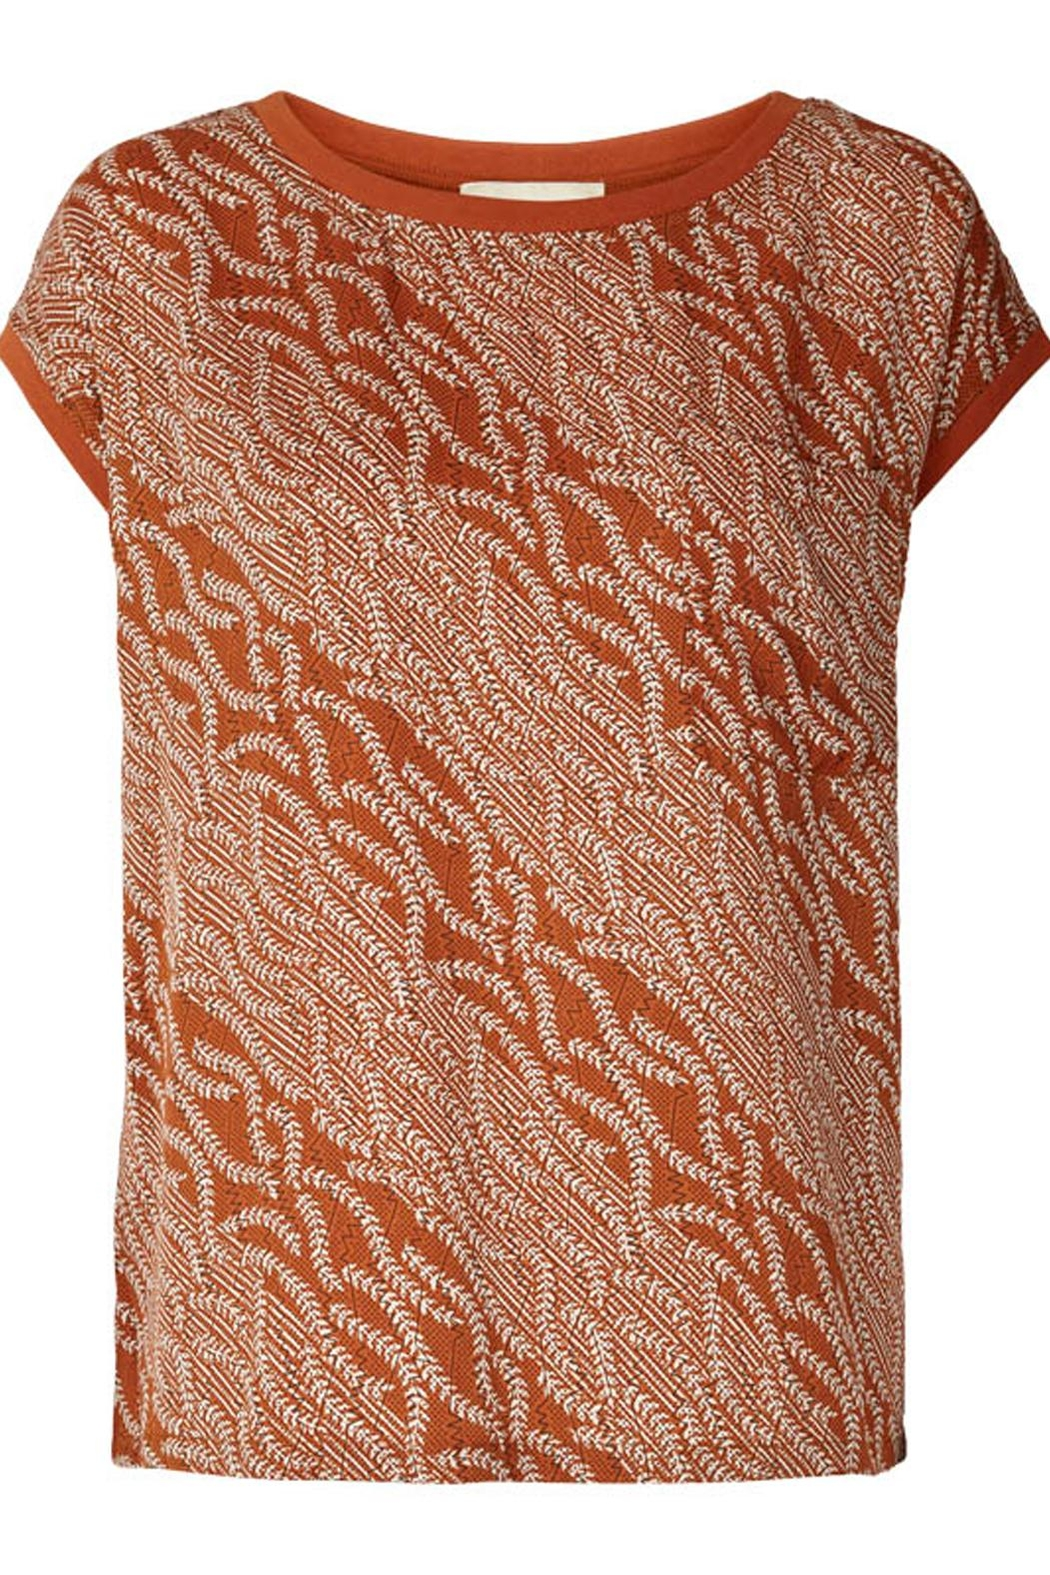 LOLLYS LAUNDRY Rust Colored Top - Main Image